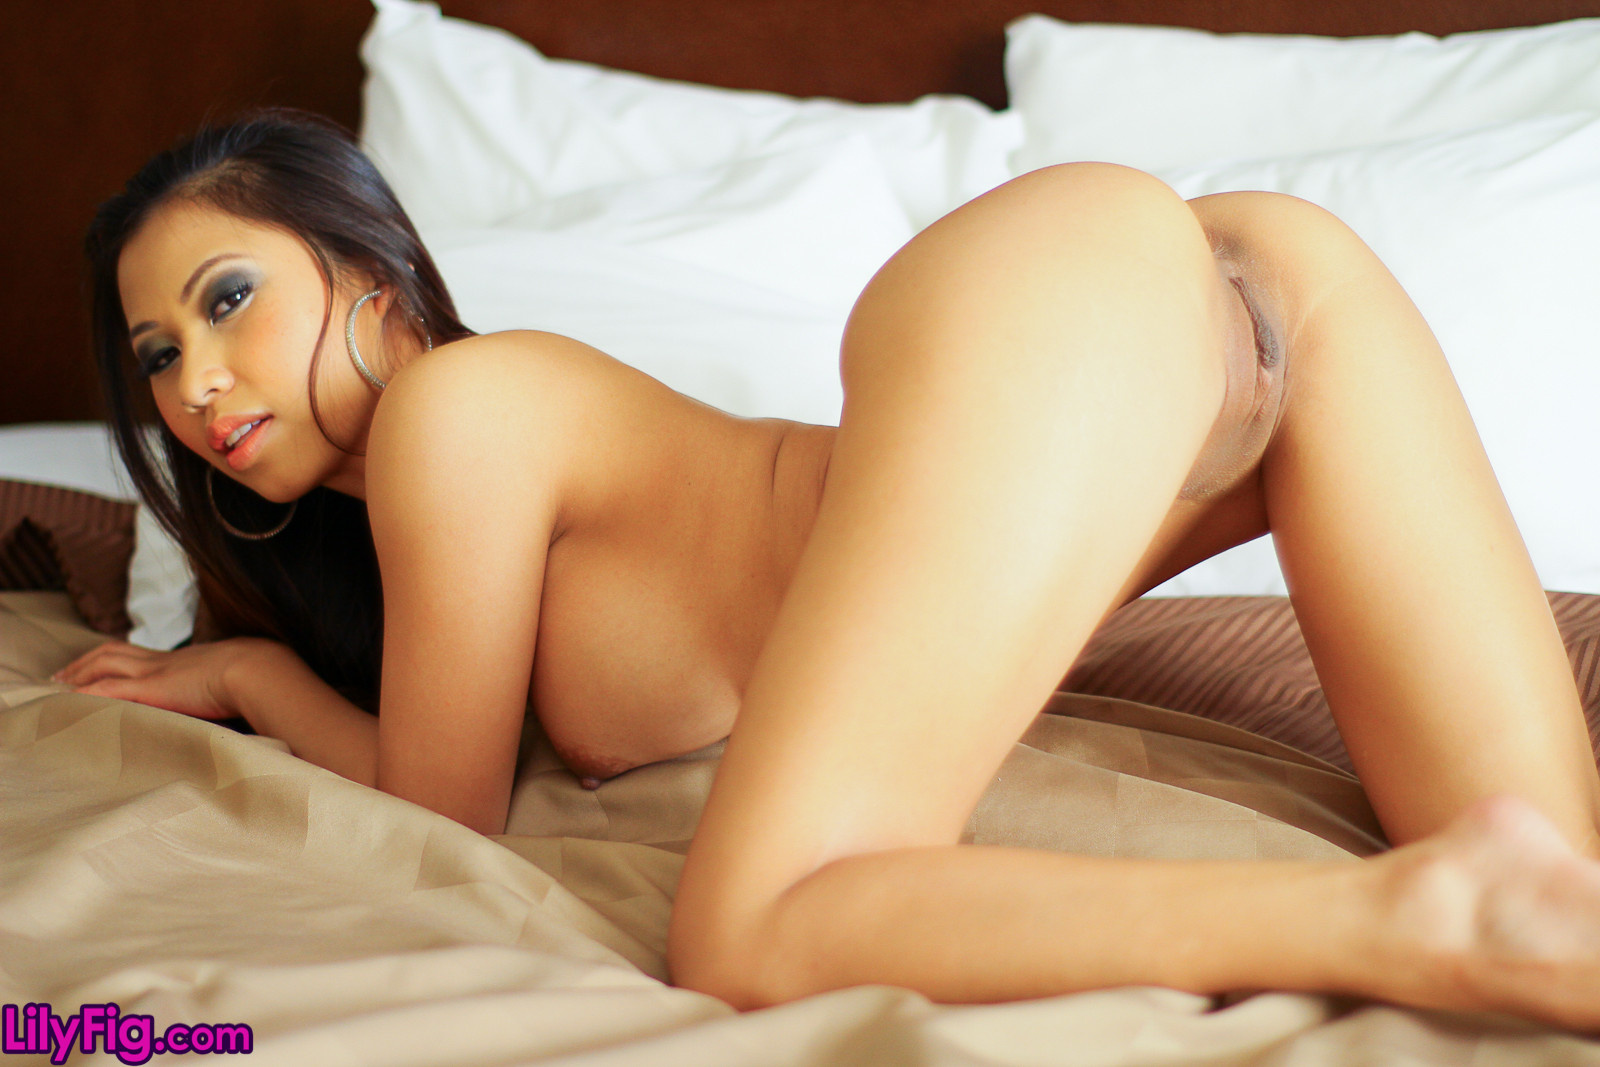 Wallpaper Tits, Ass, Pussy, Asian Desktop Wallpaper -6791